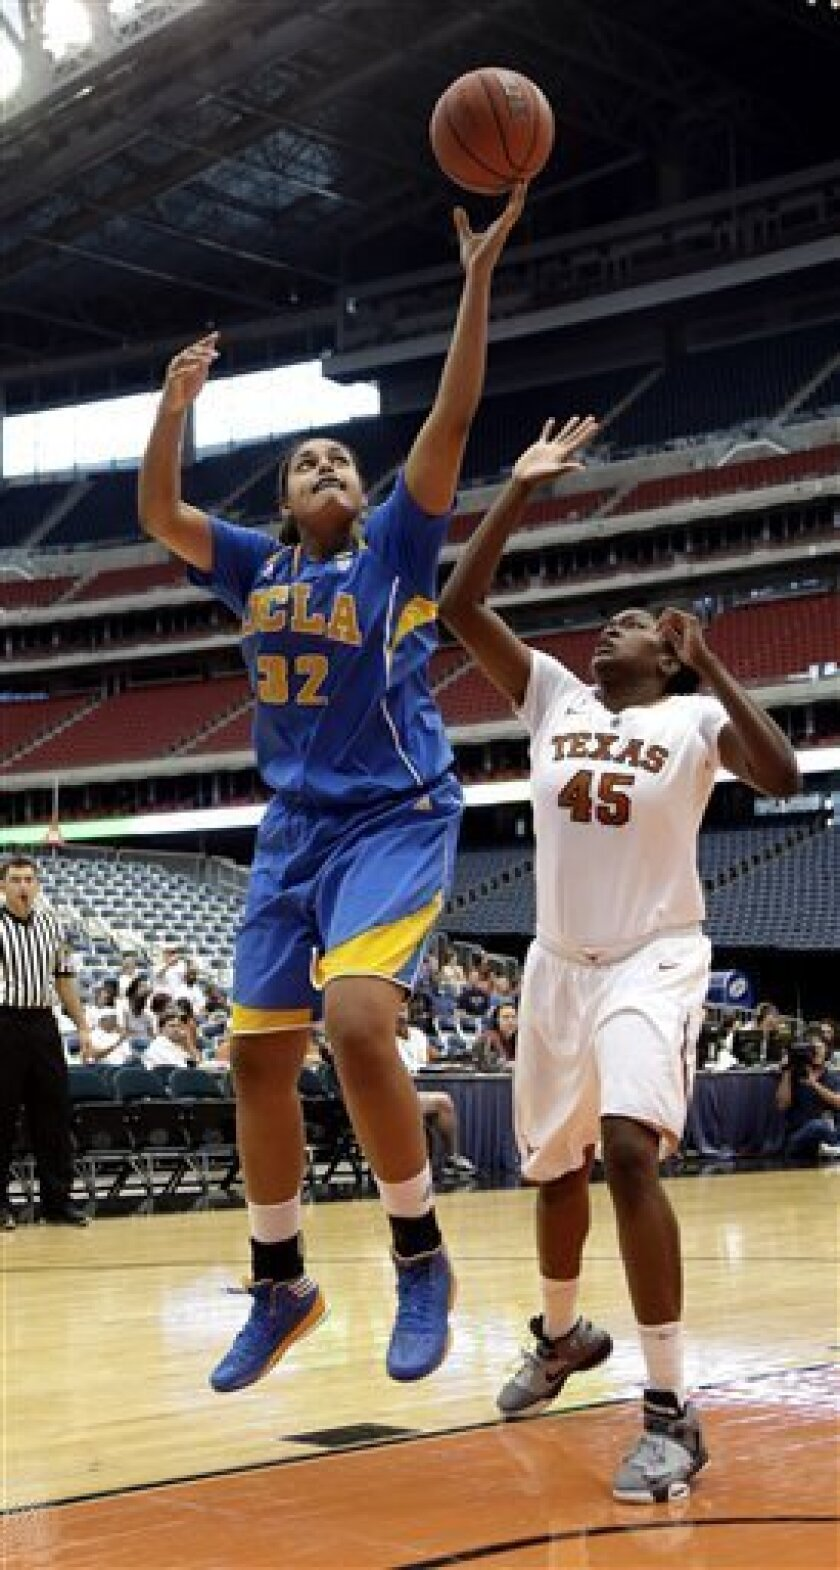 UCLA's Alyssia Brewer (32) shoots as Texas' Cokie Reed (45) defends during the second half of an NCAA college basketball game at Reliant Stadium Saturday, Dec. 8, 2012, in Houston. UCLA beat Texas 62-42. (AP Photo/David J. Phillip)